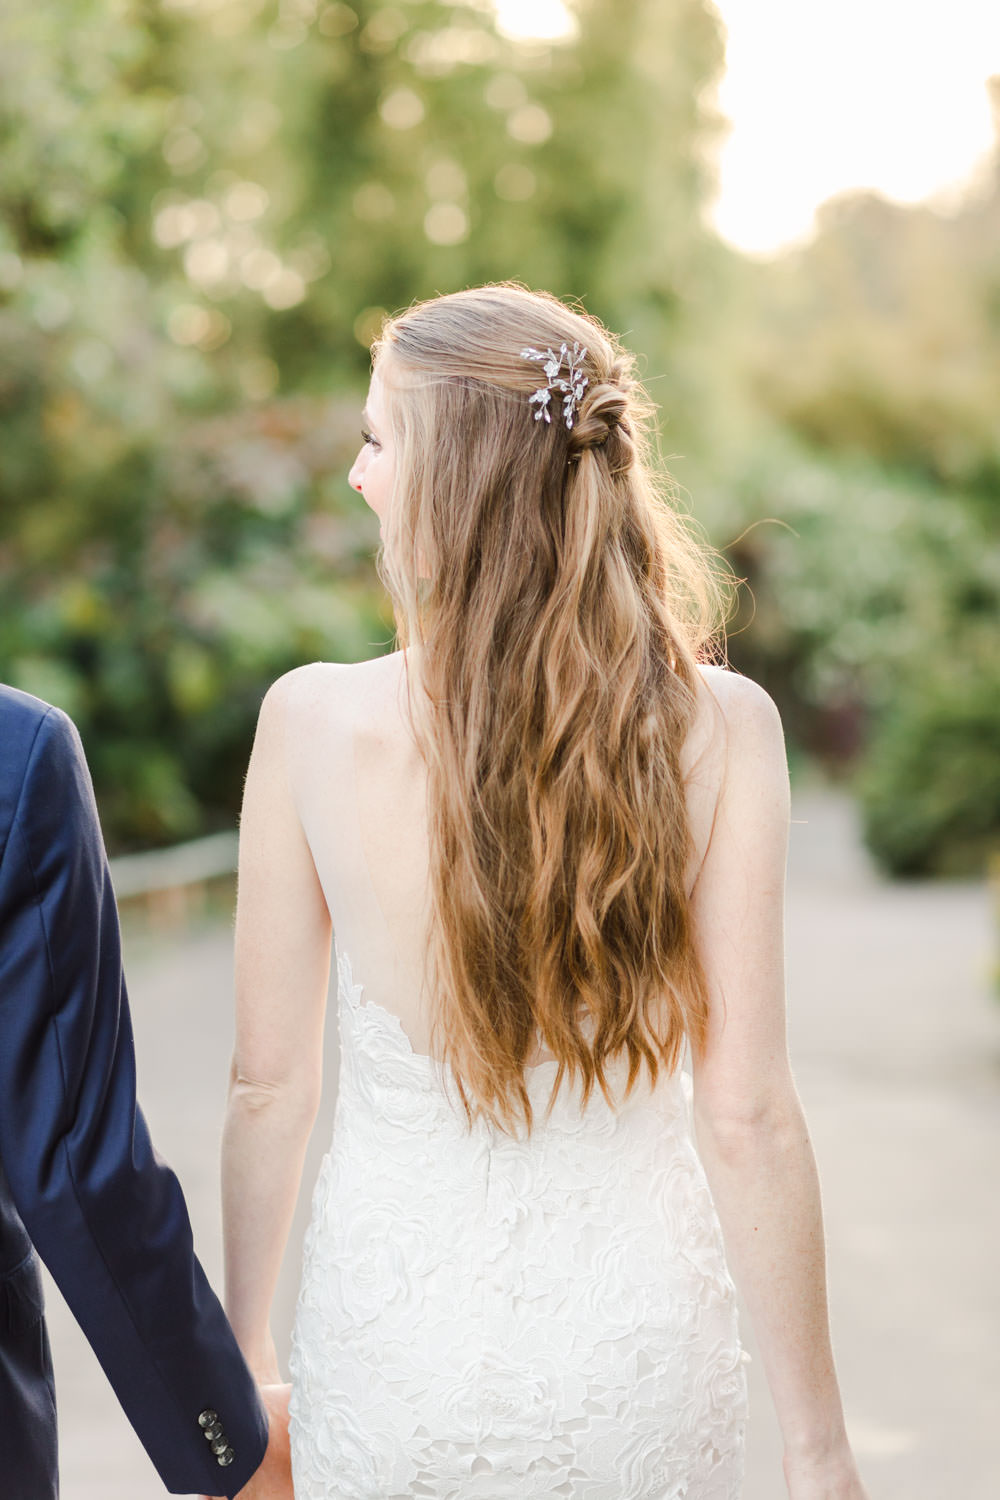 Bridal hair down with half dutch braid, Bride and groom portrait at San Diego Botanical Garden, Cavin Elizabeth Photography